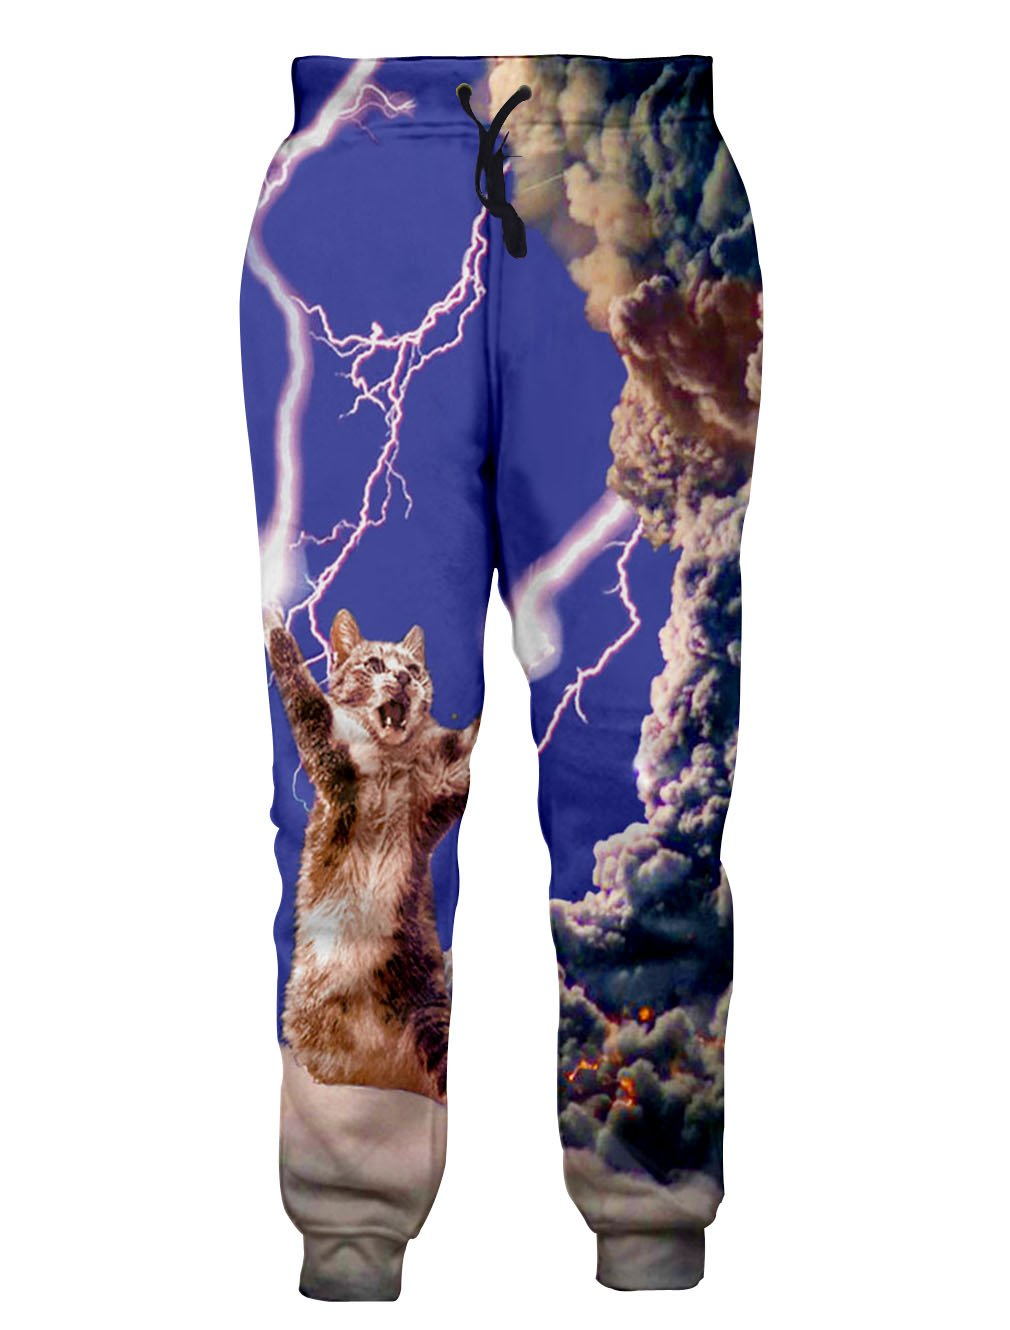 Cute Sweat Pants Especially for those of us who love cats.